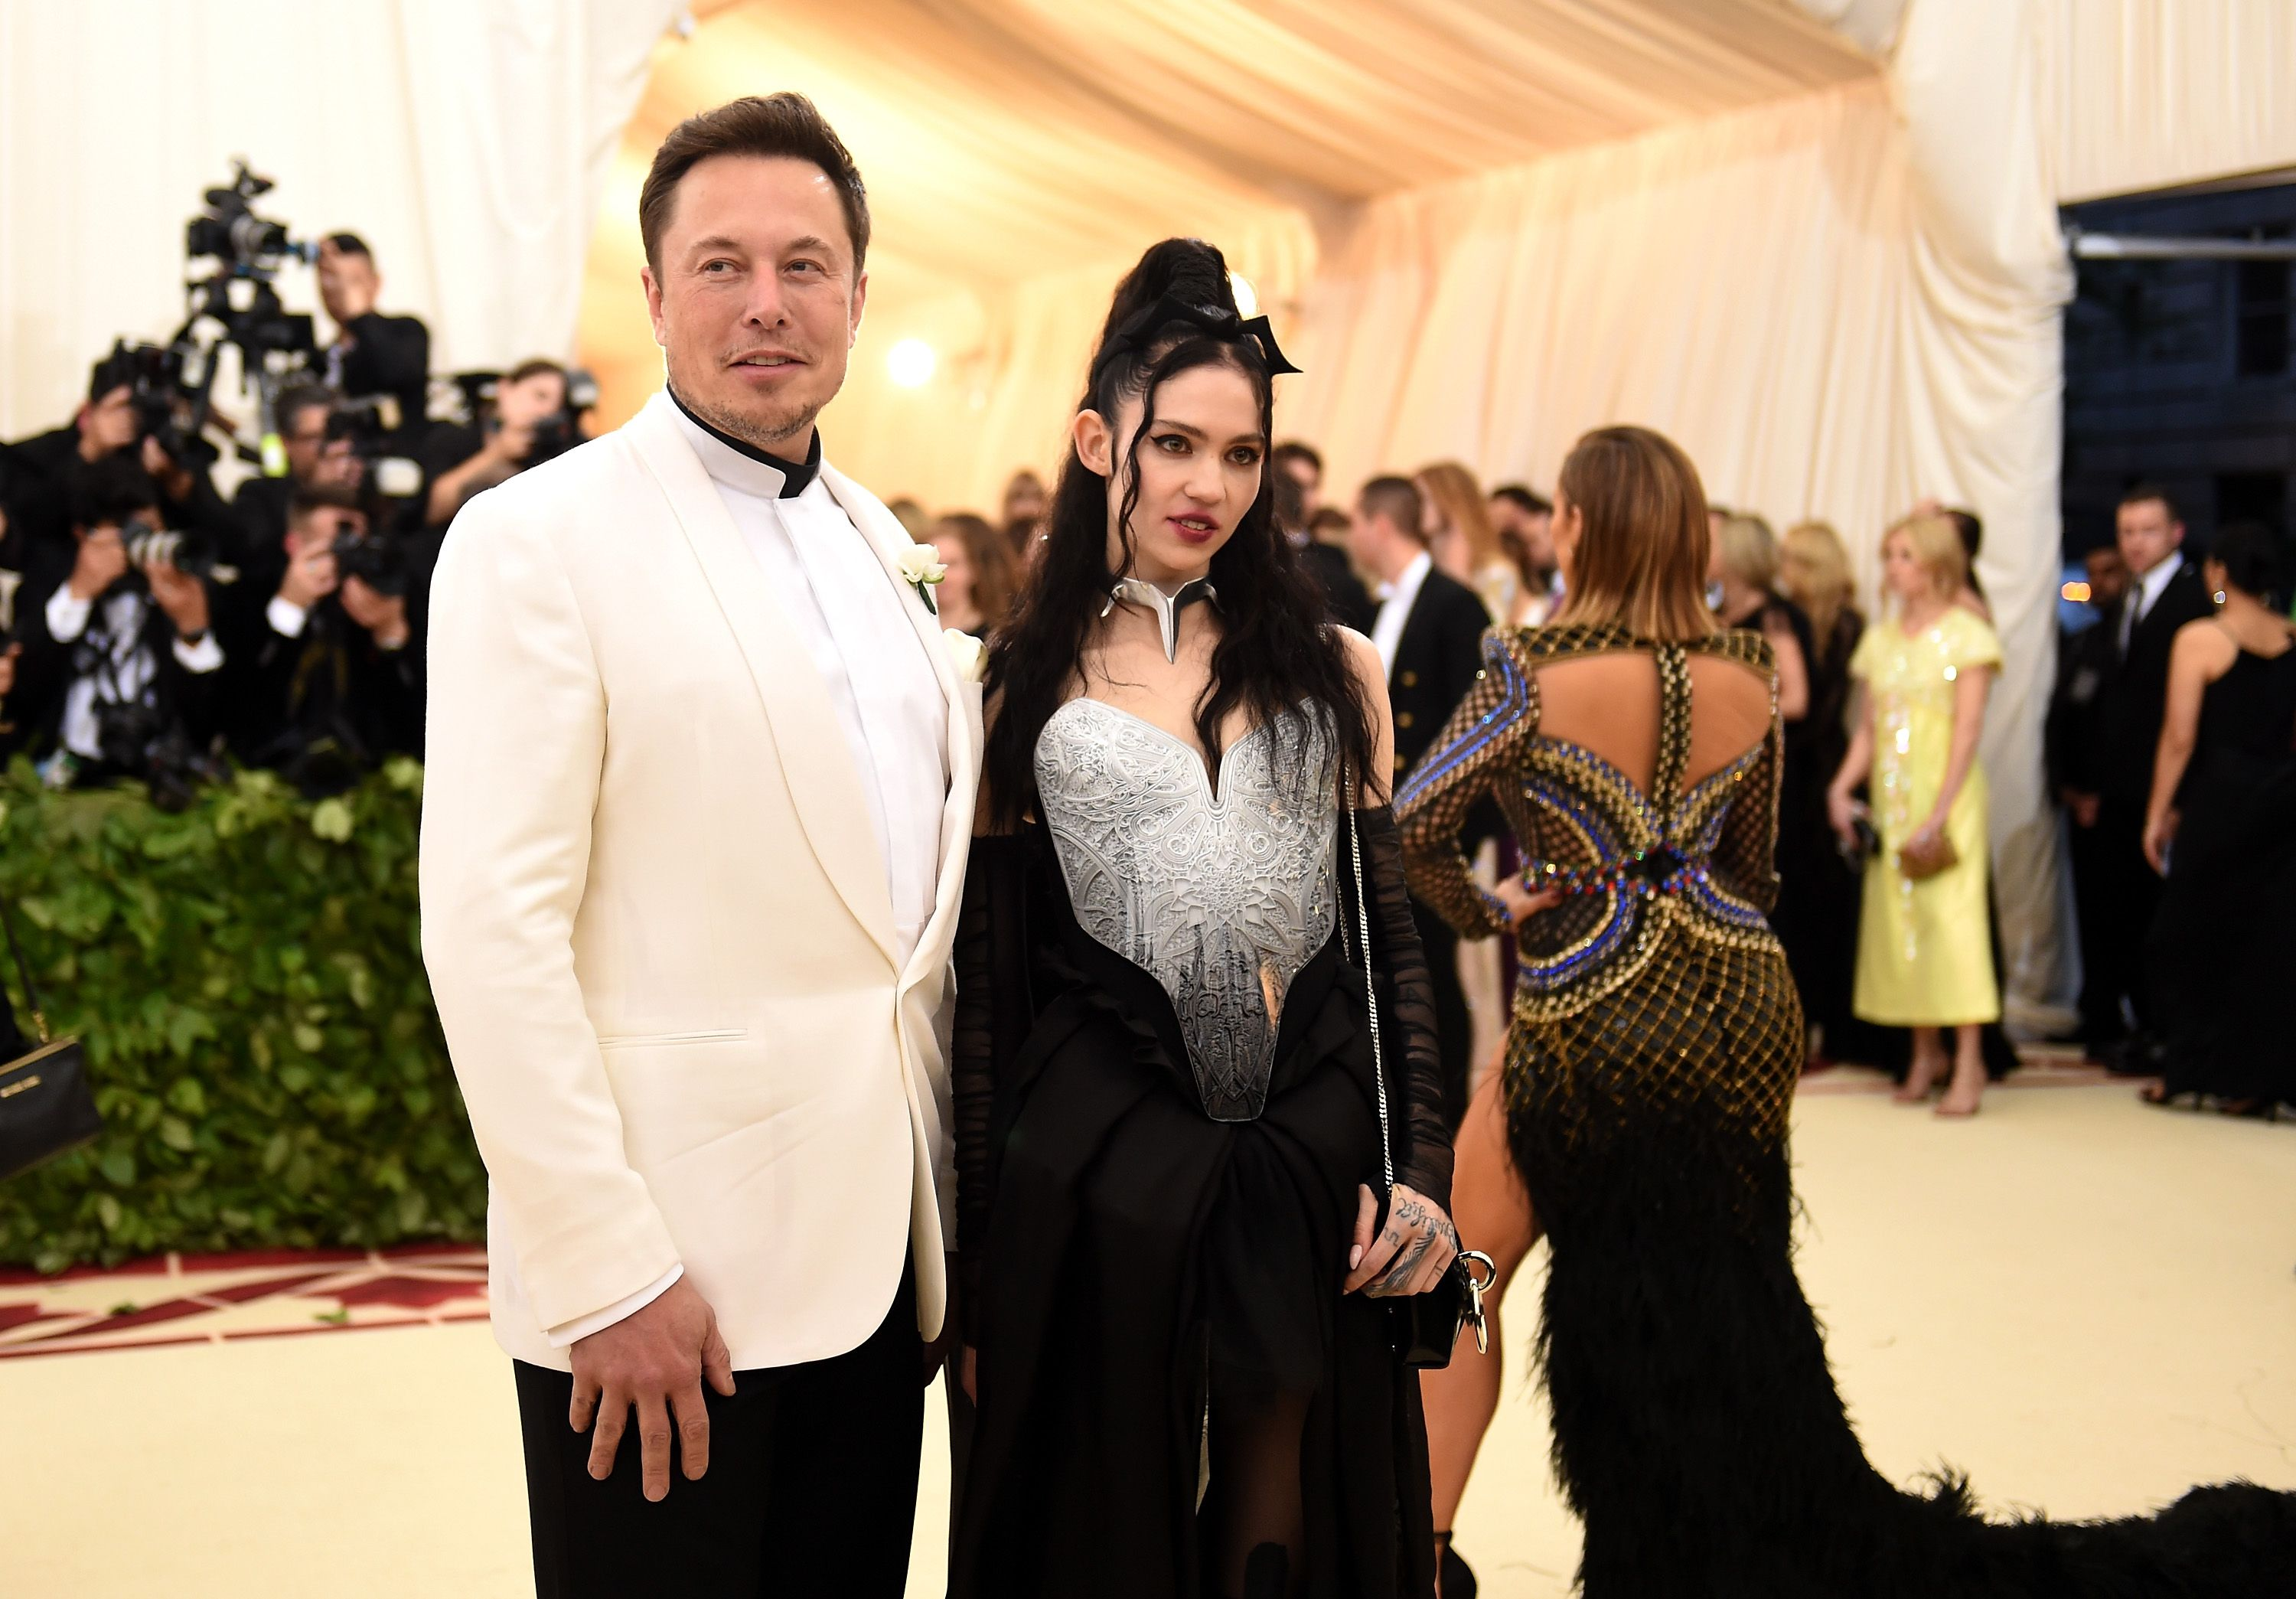 Elon Musk Finally Explained How to Pronounce X Æ A-12, the Name of His Son With Grimes